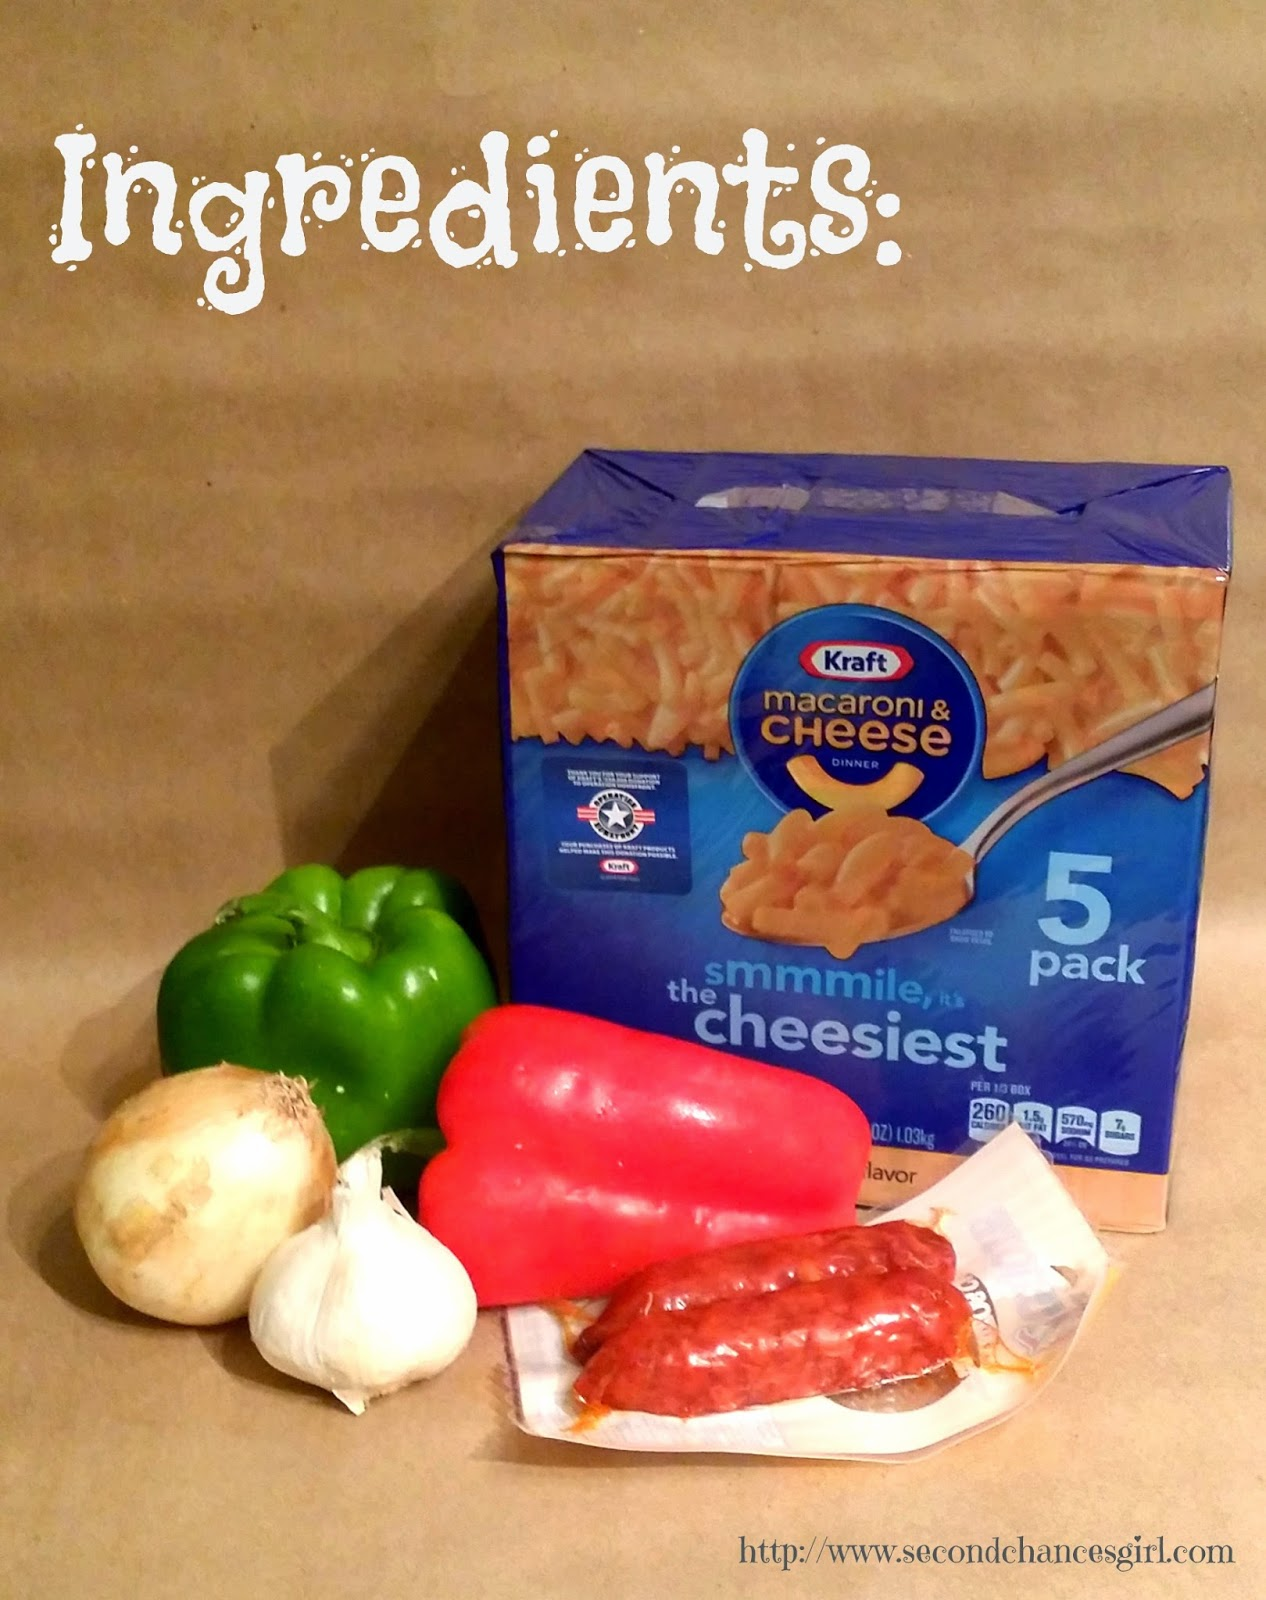 Ingredients for Chorizo Mac & Cheese #GolazoKraft #shop